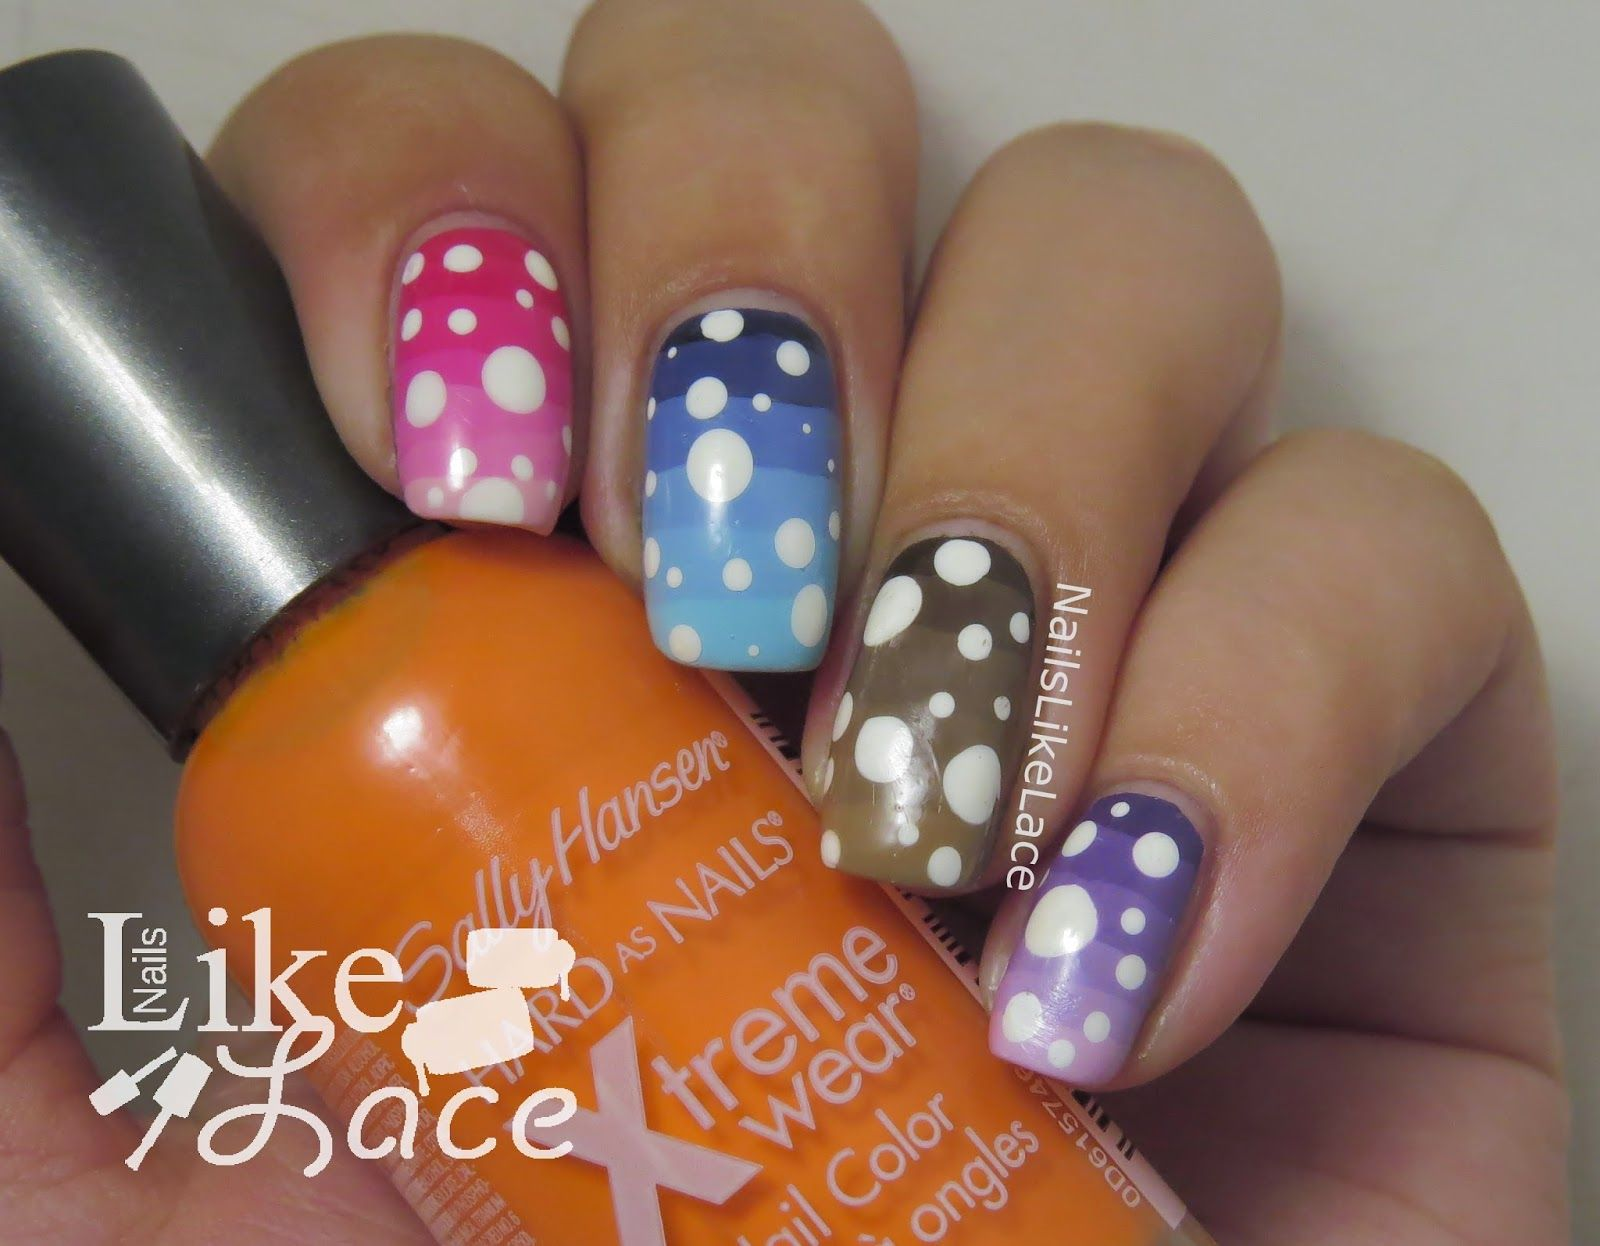 NailsLikeLace: Striped Rainbow Gradients and Dots